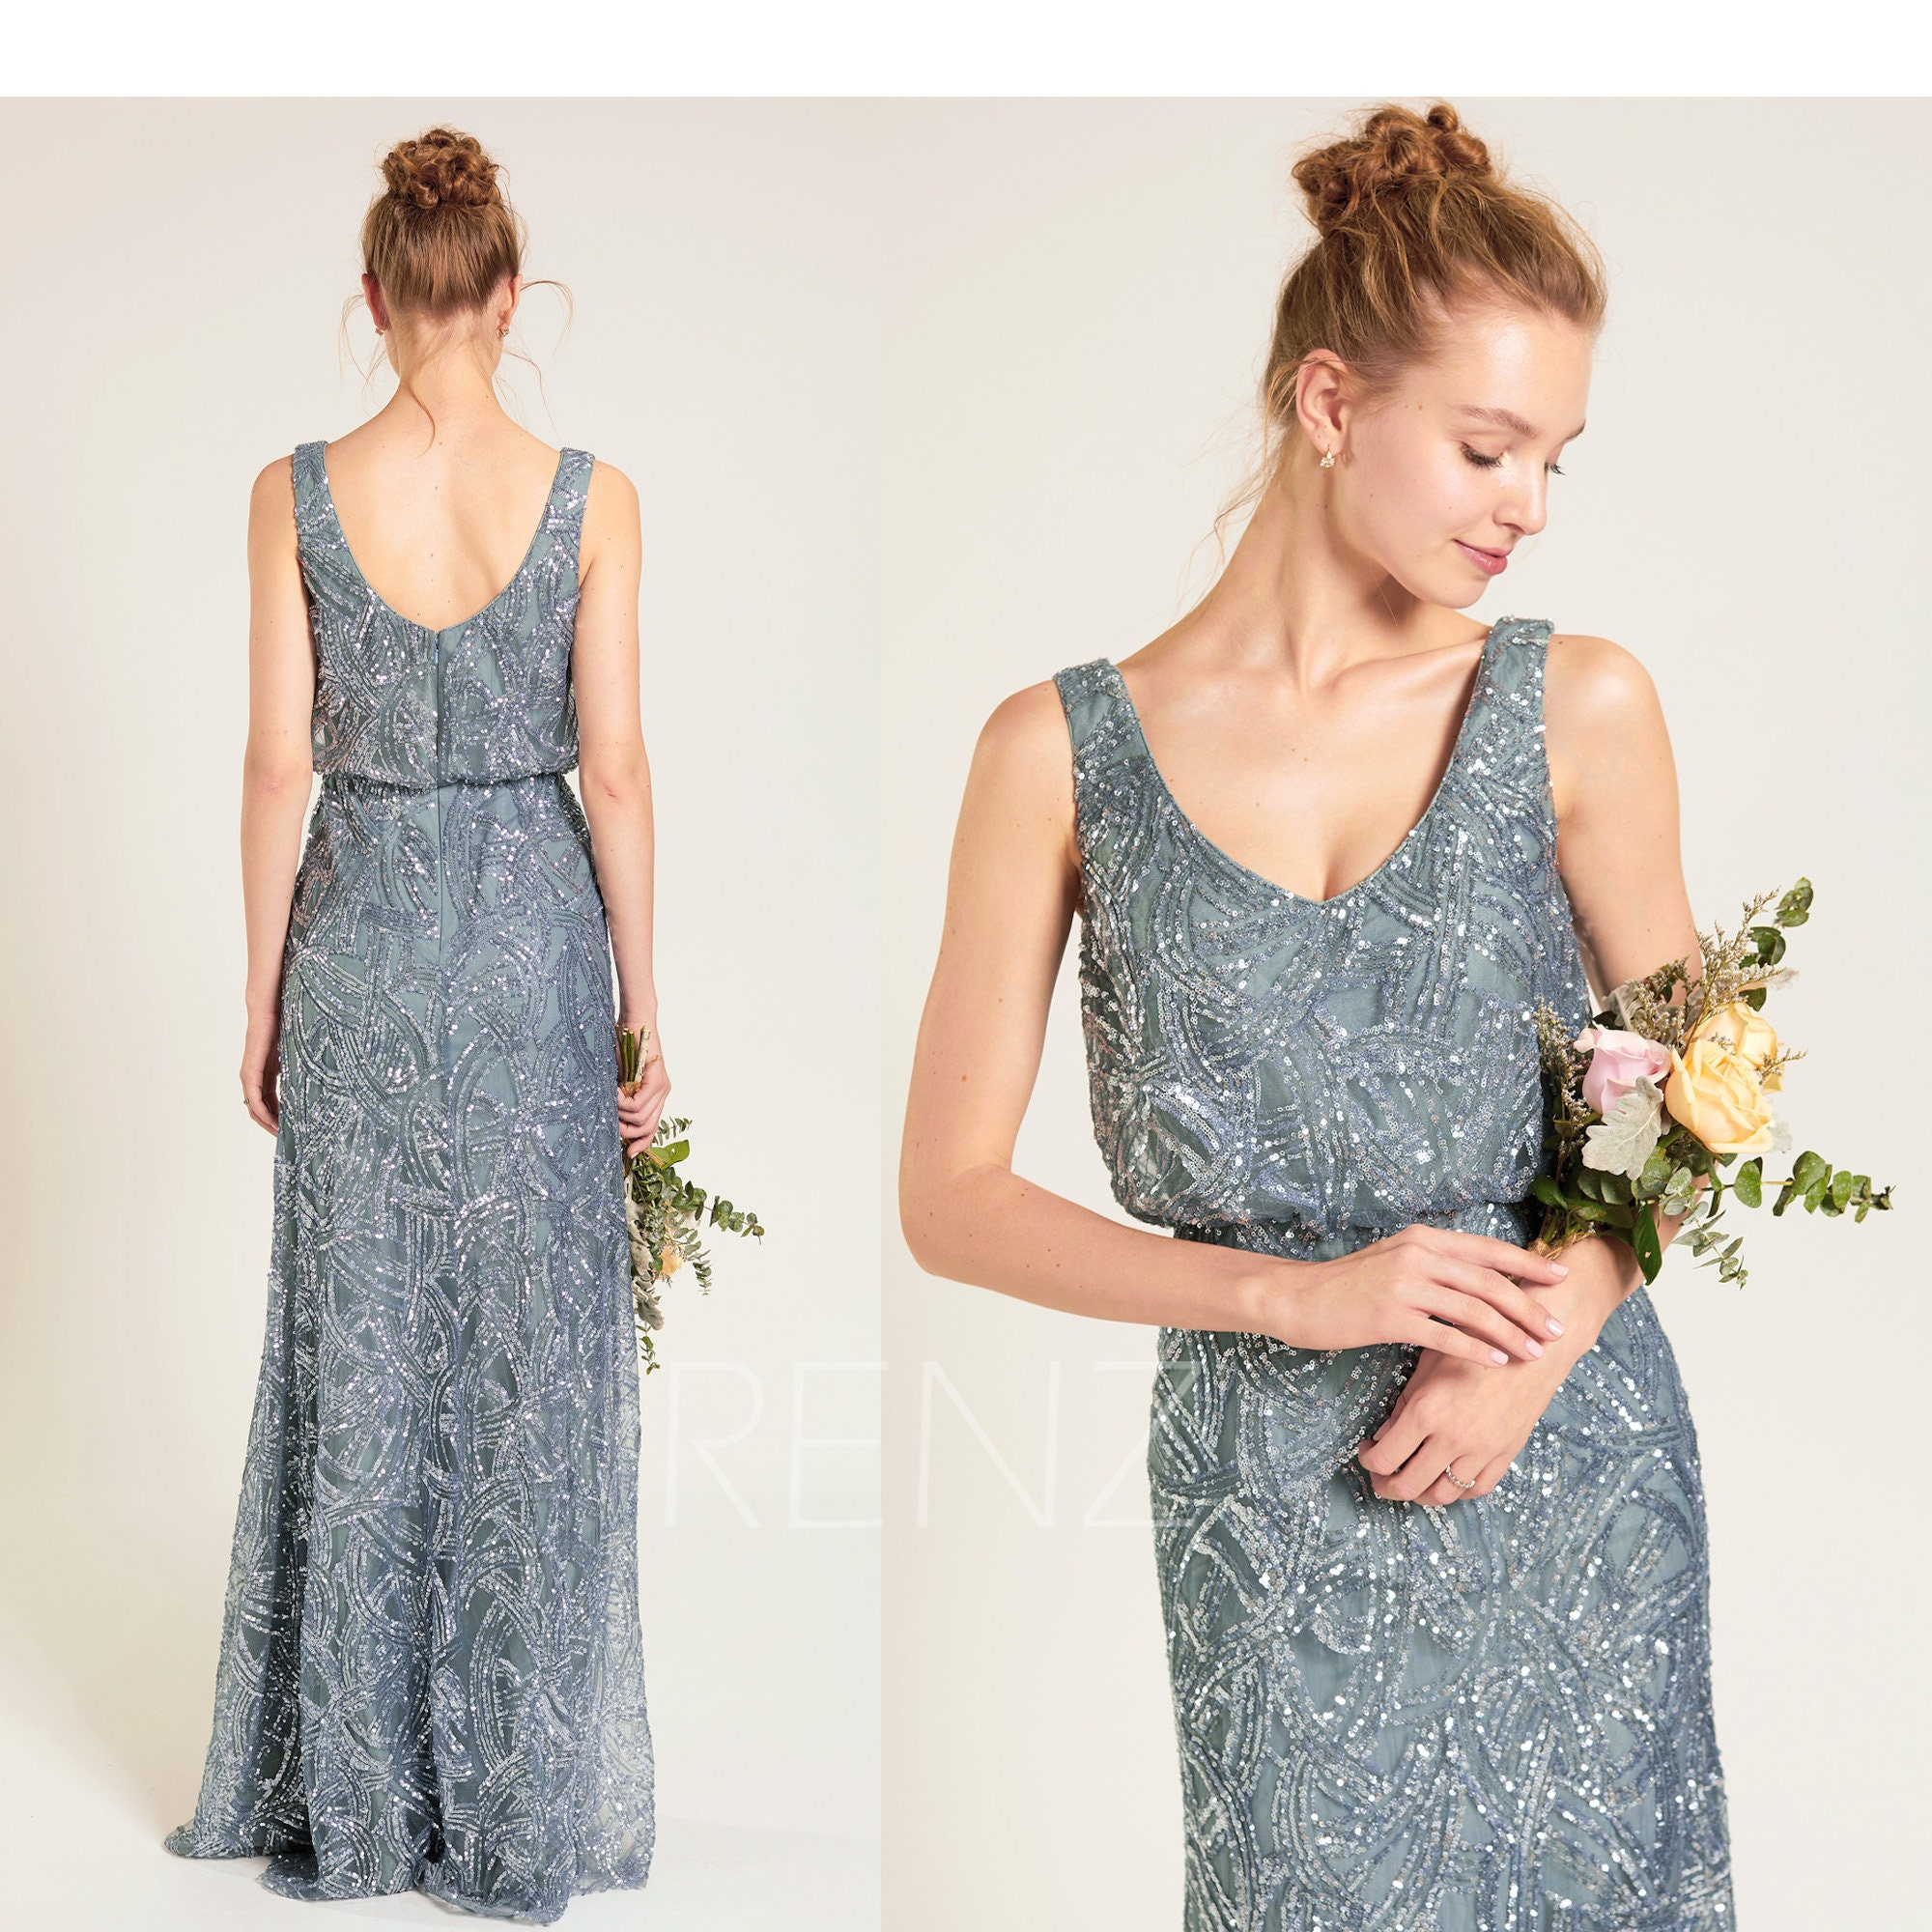 ebe7a612830 Party Dress Dusty Blue Sequin Bridesmaid Dress Wedding Dress V